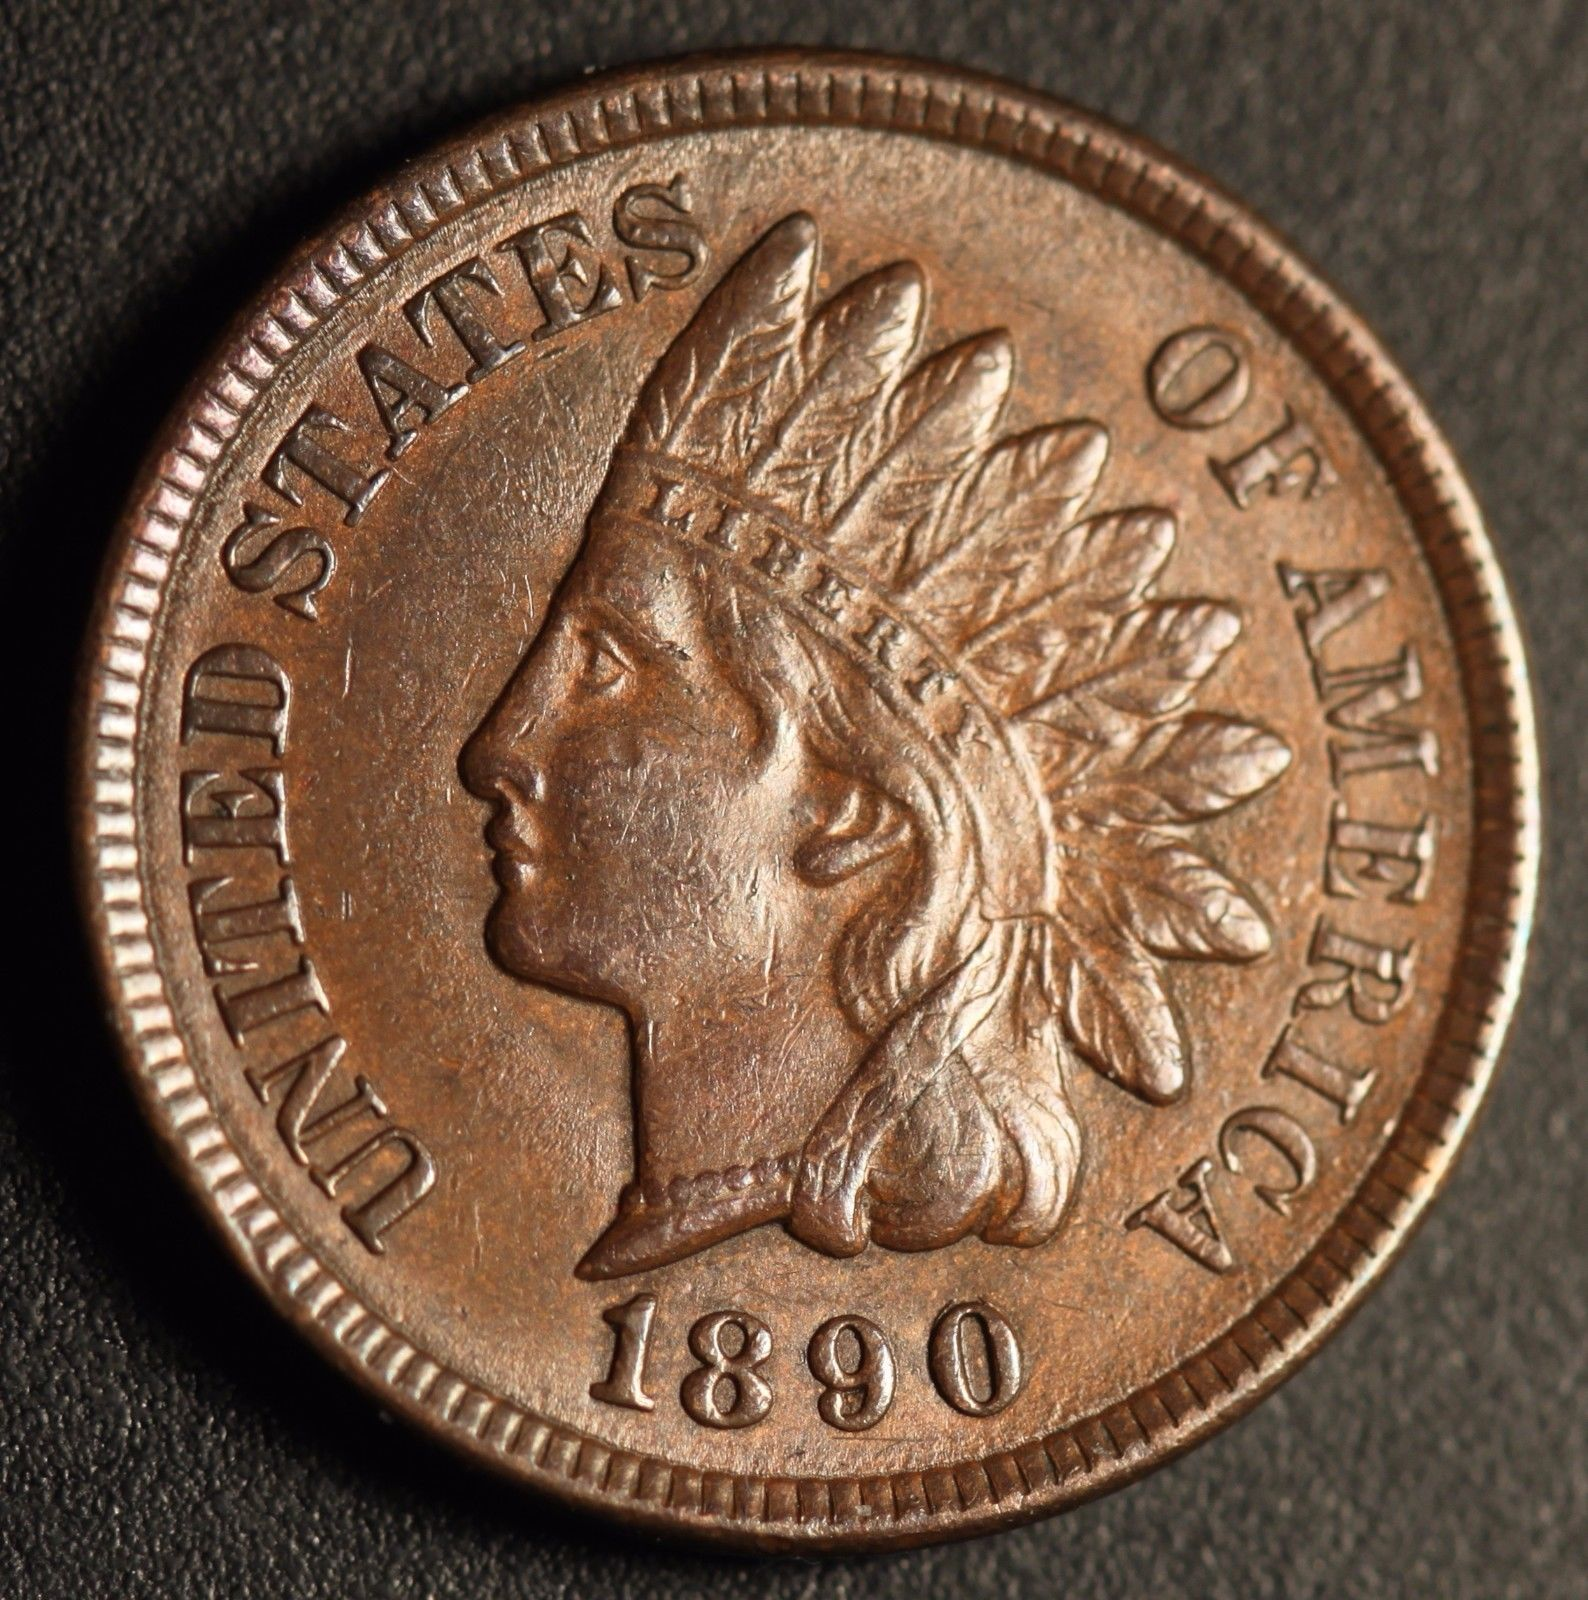 1890 RPD-001 - Indian Head Penny - Photo by Ed Nathanson